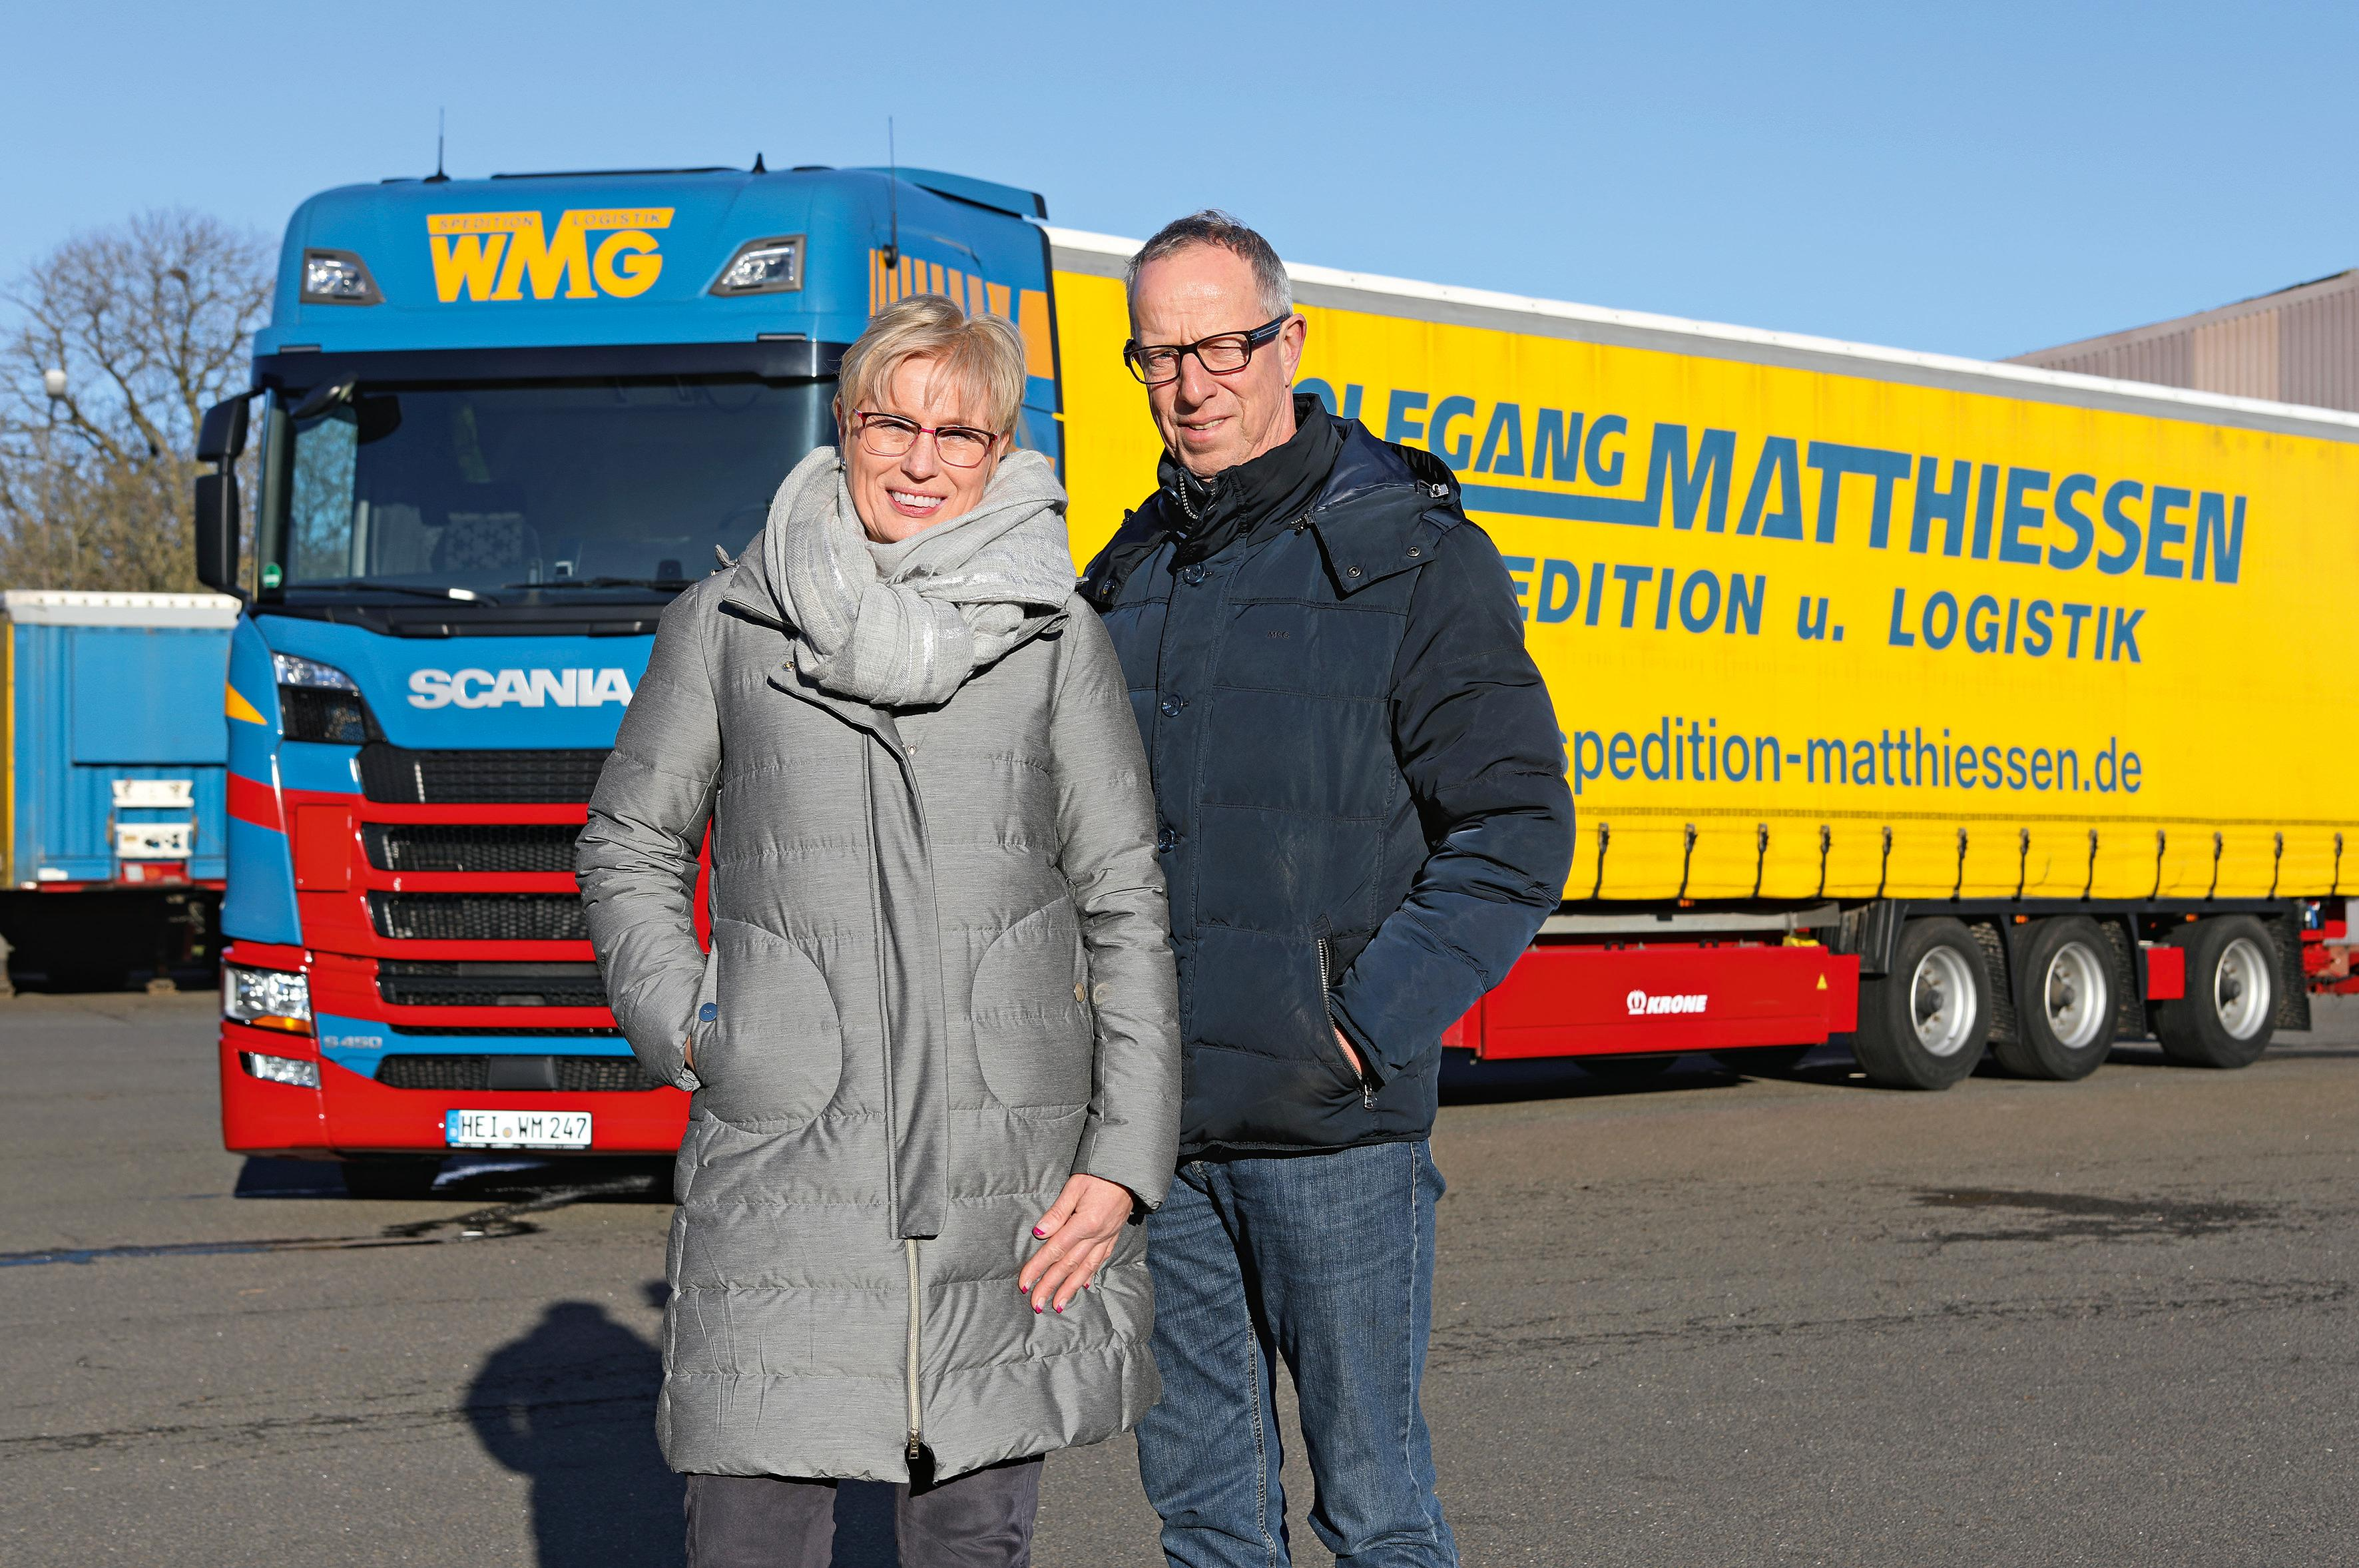 Family business through and through: Managing Director Marion Matthiessen-Voss (left) manages the company together with her sister Maike. Her husband Thies Voss (right) is responsible for fleet management.